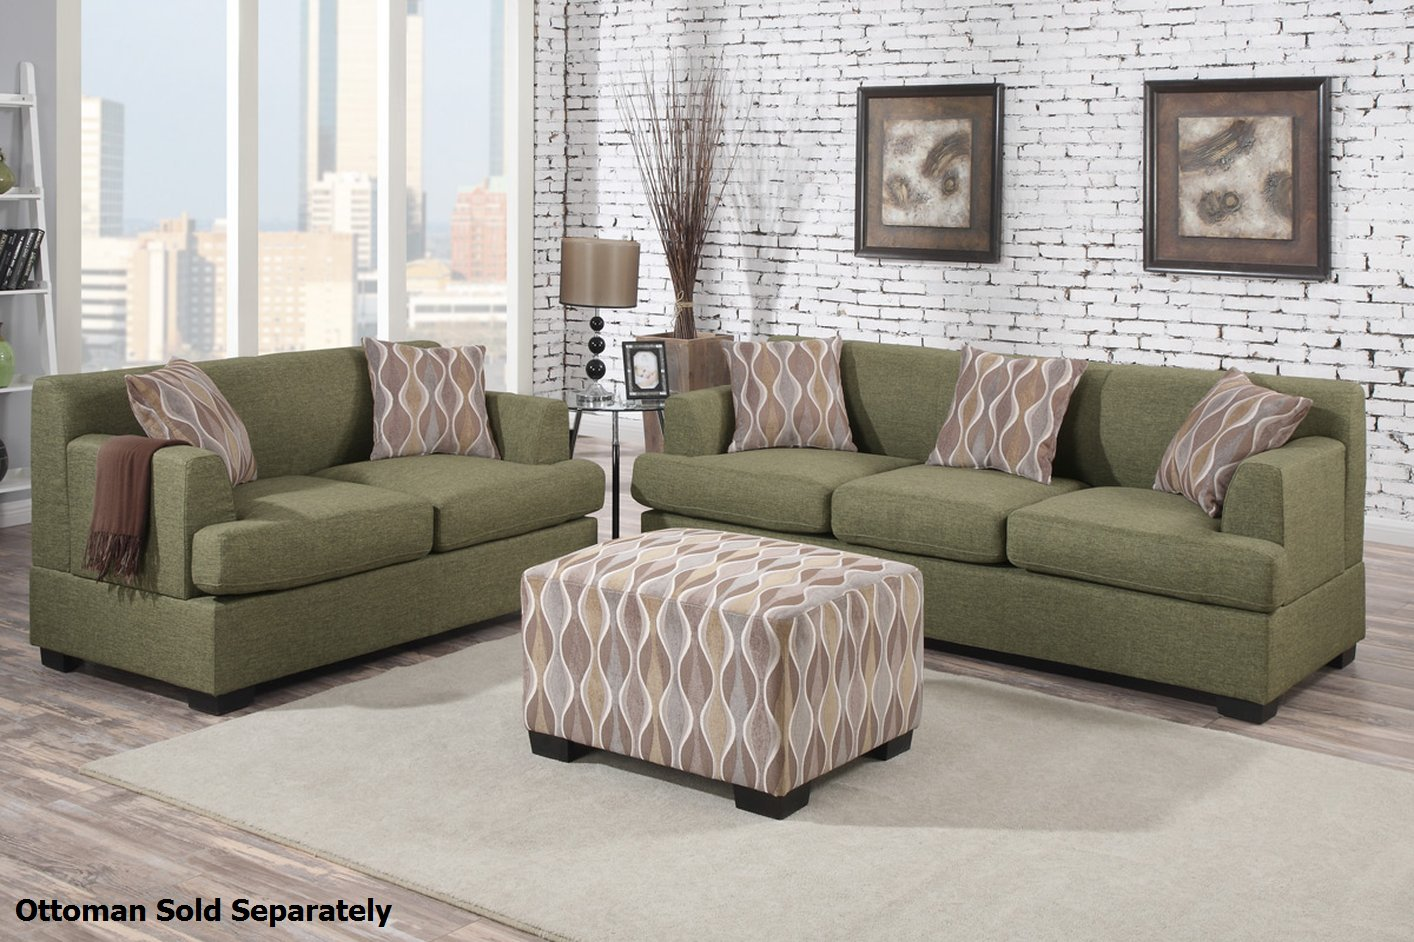 green fabric sofas t cushion sofa slipcovers pottery barn poundex montreal f7978 f7977 and